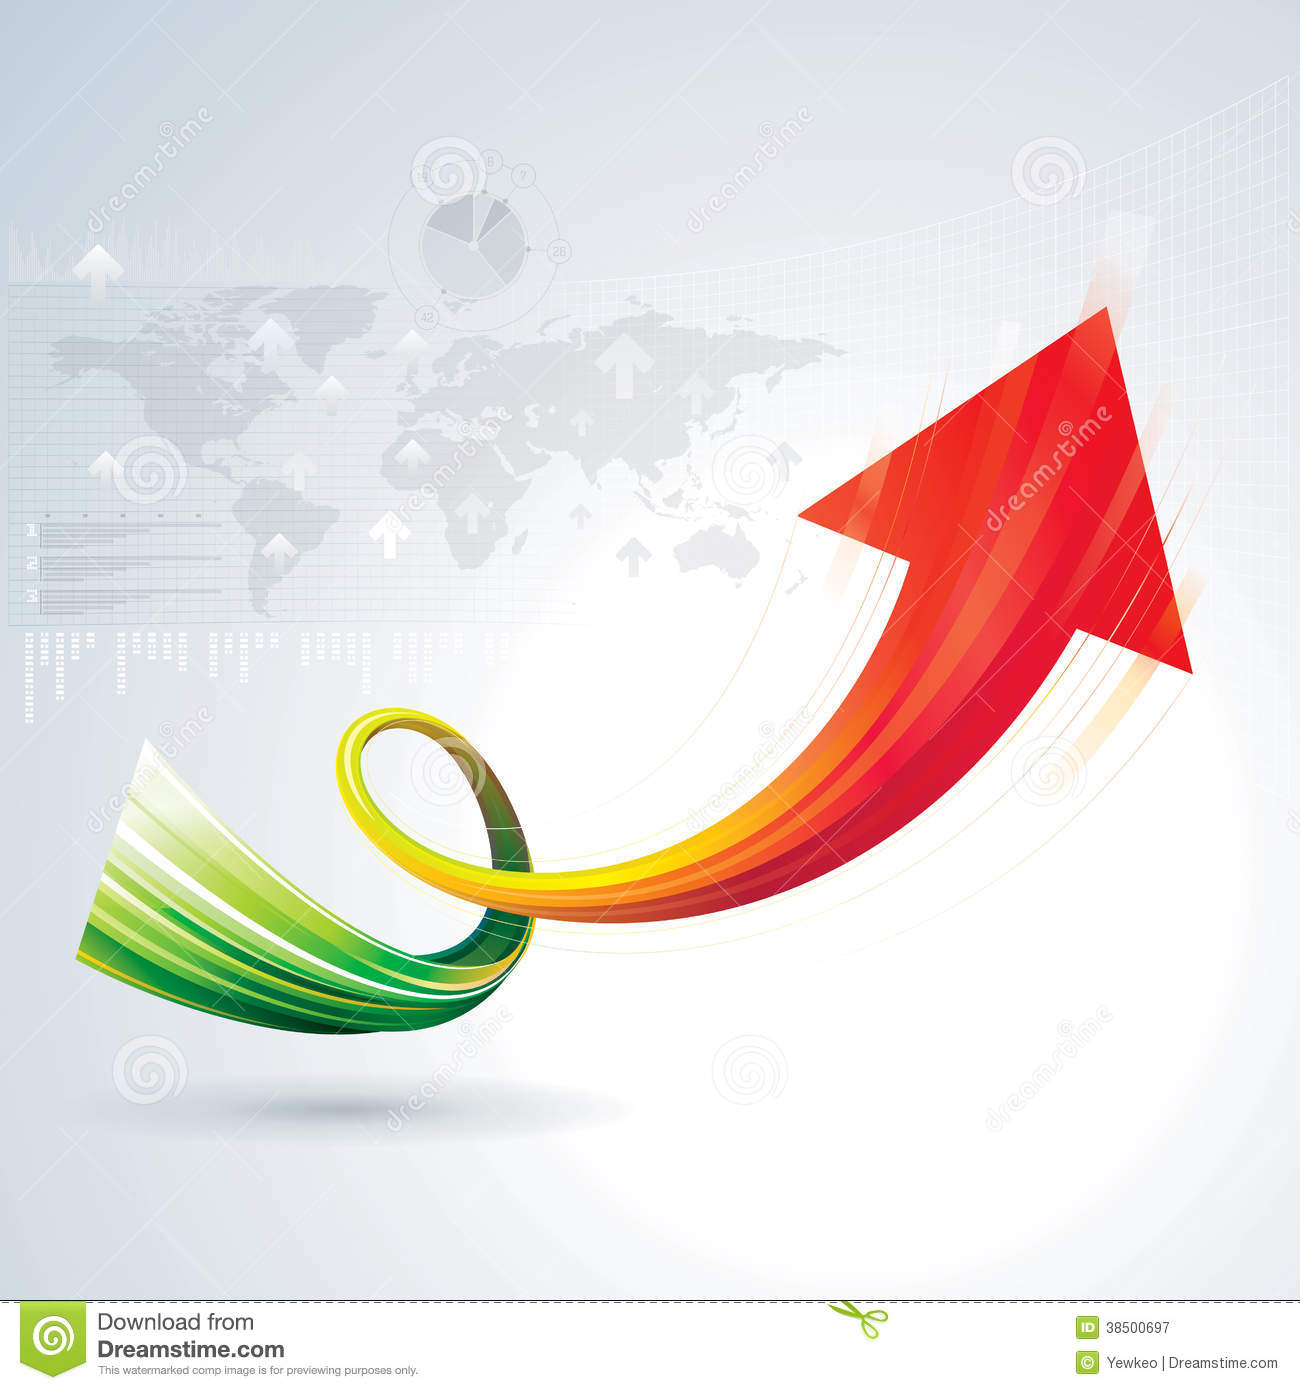 Growth Arrow Royalty Free Stock Photography - Image: 38500697